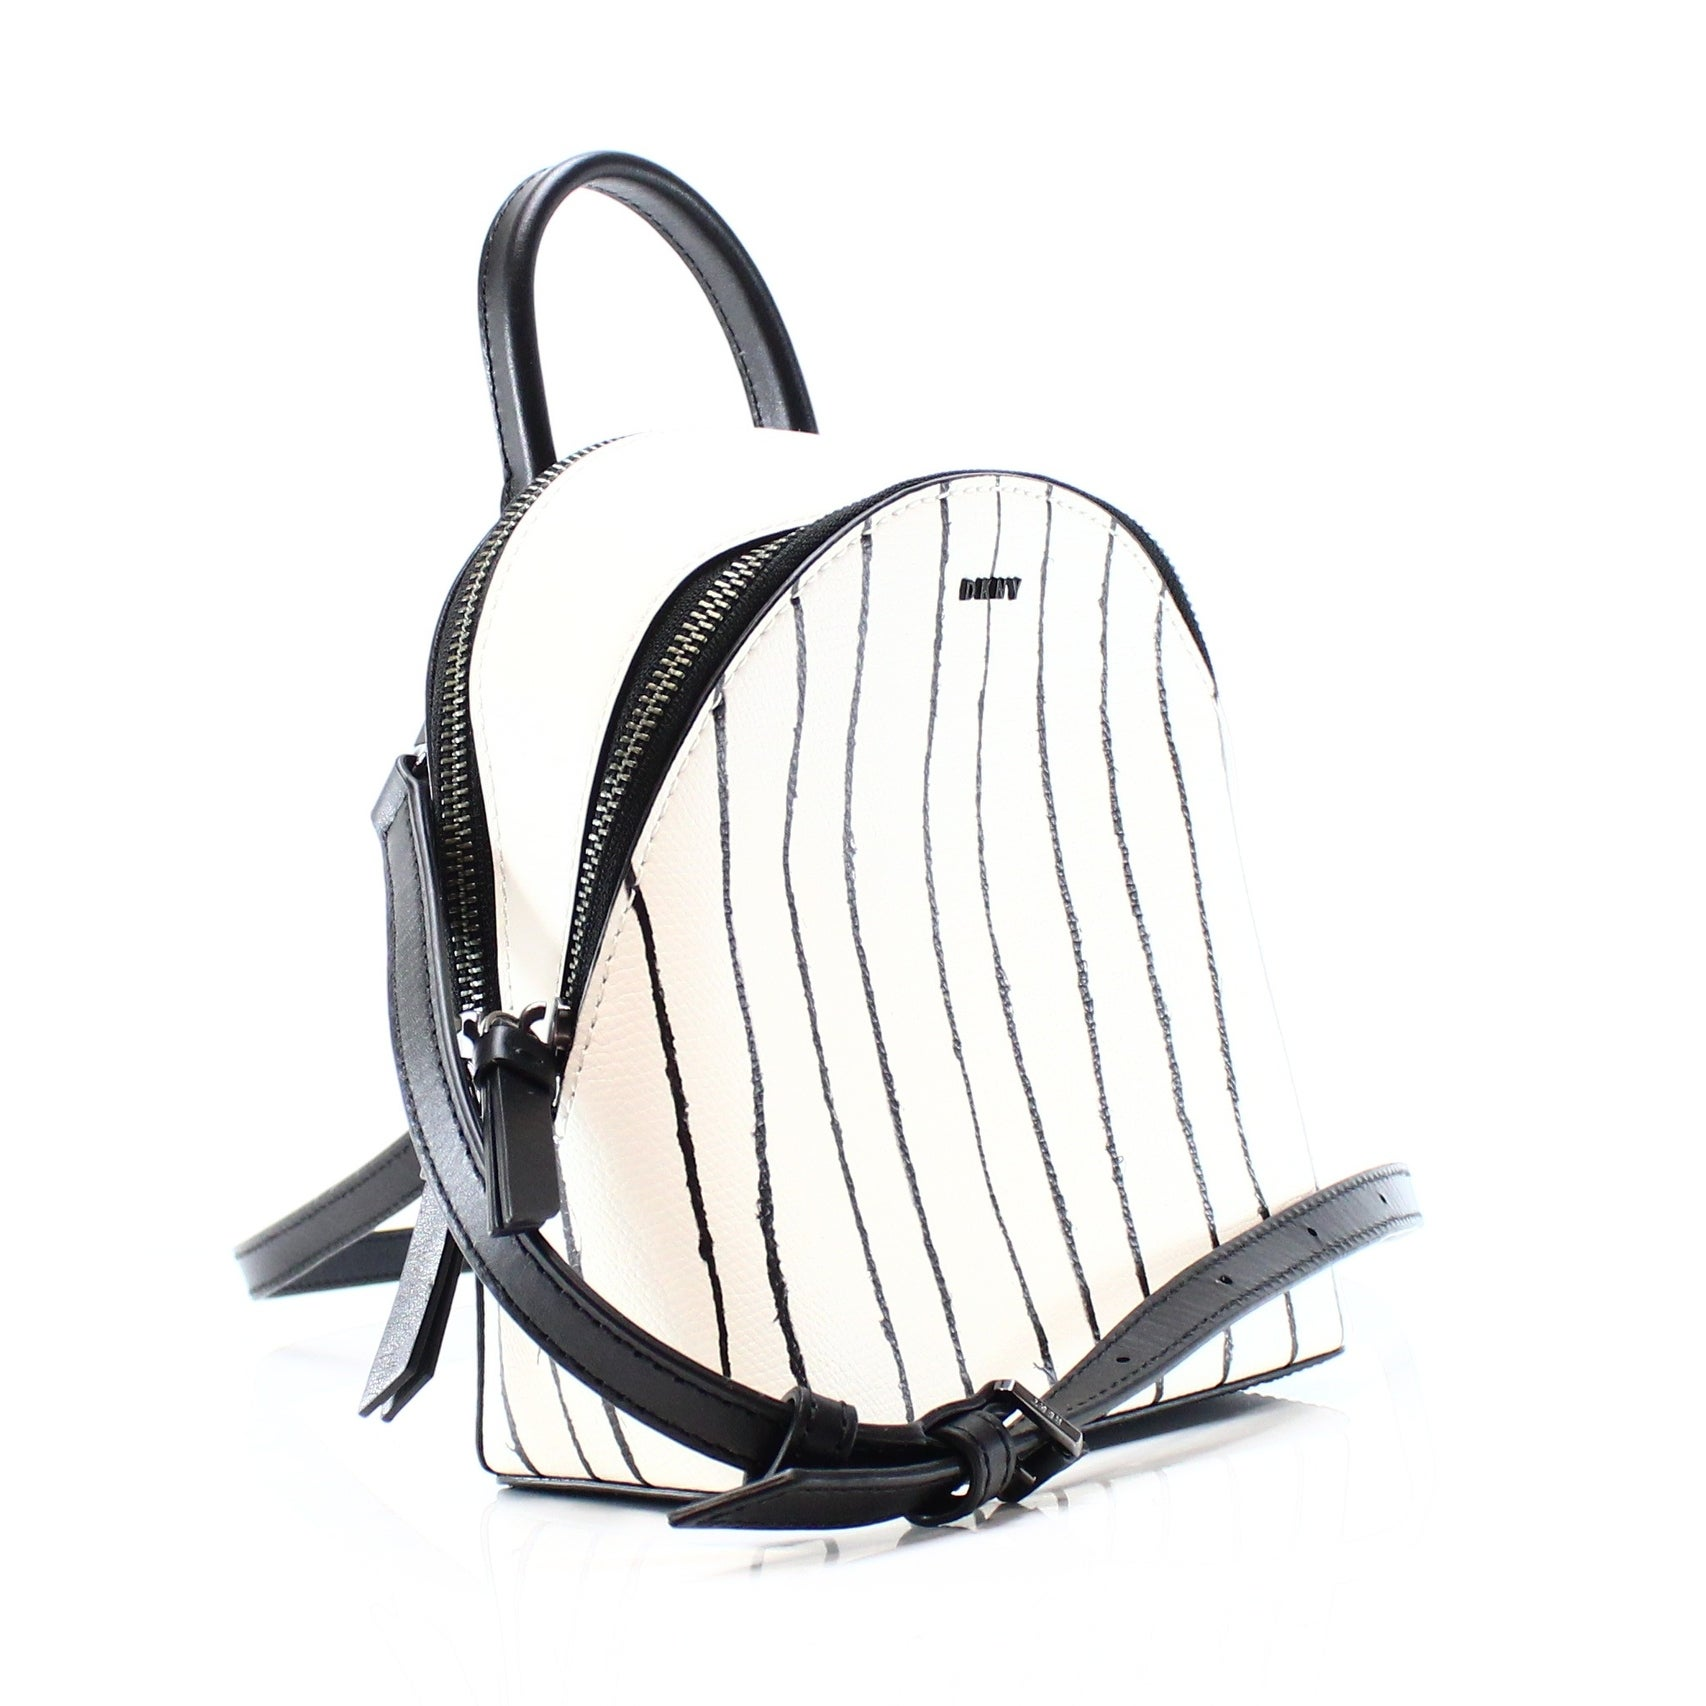 7759b80fcf Shop DKNY NEW White Striped Leather Mini Backpack Messenger Bag Purse -  Free Shipping Today - Overstock - 17768665